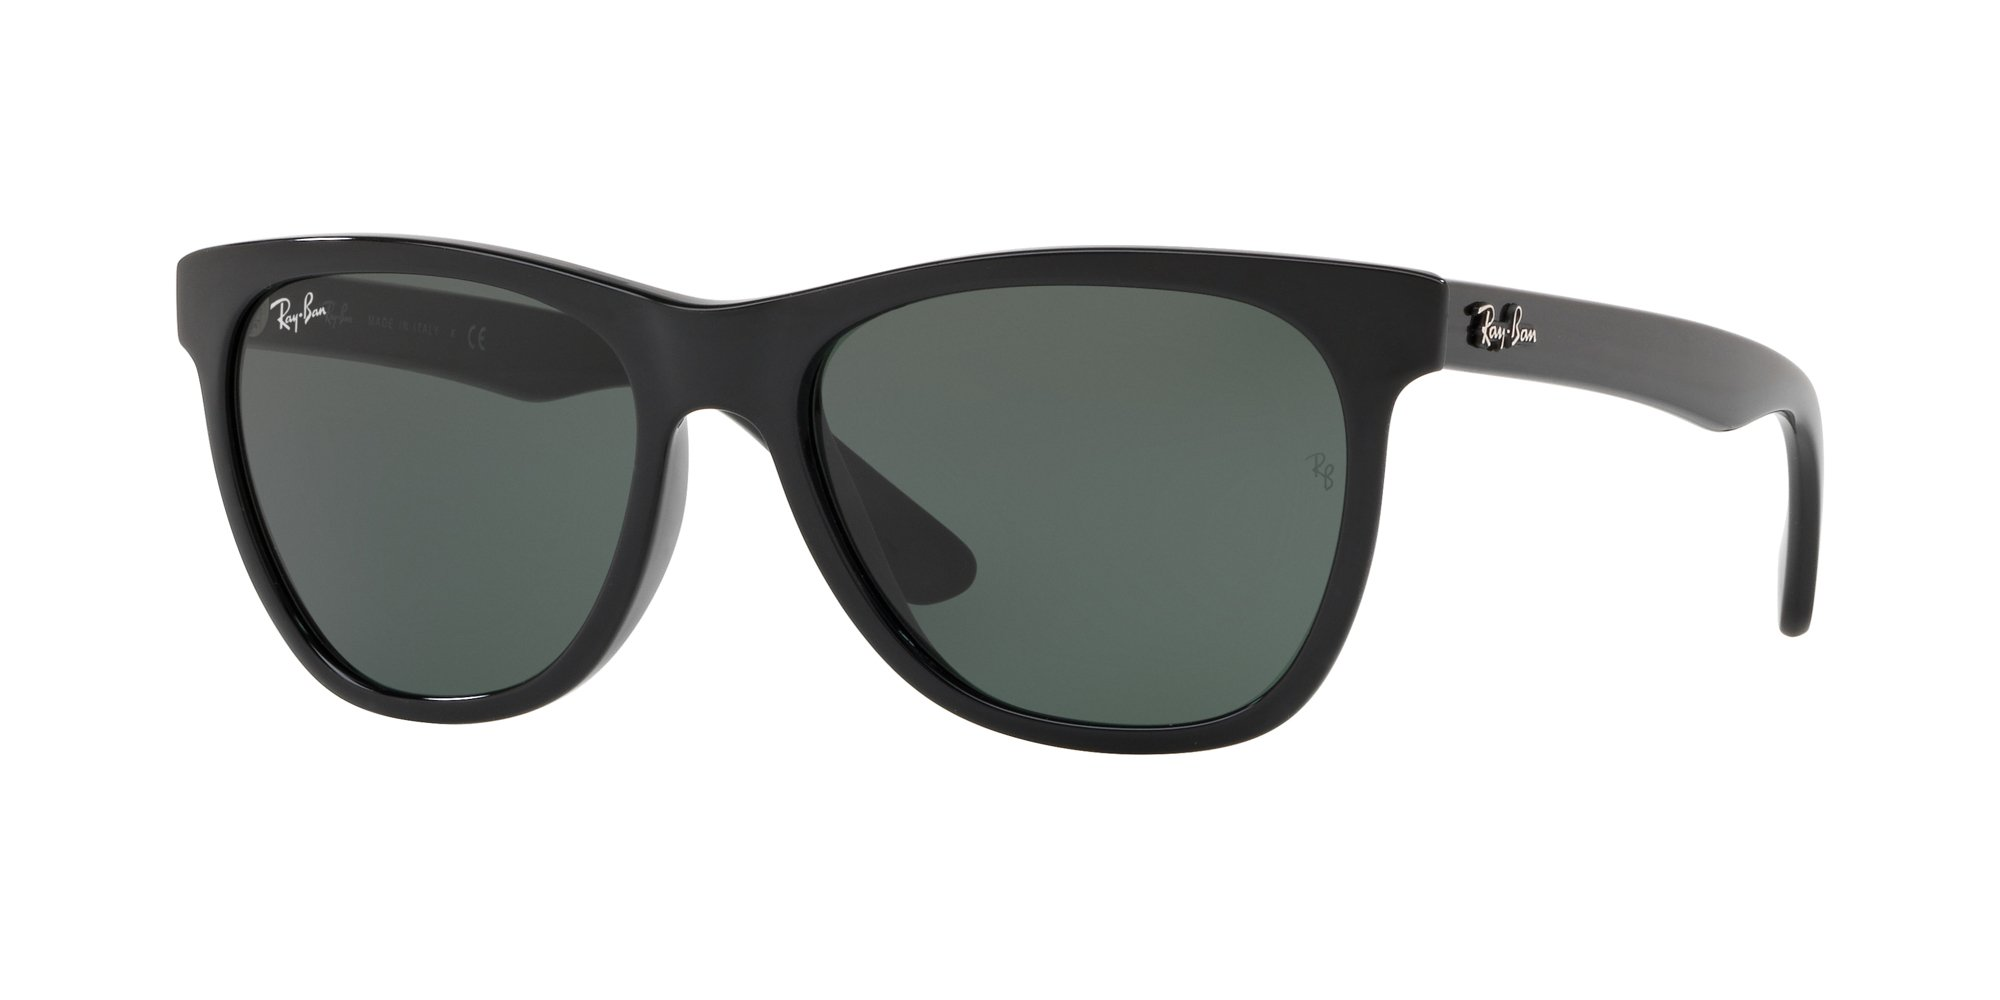 Ray-Ban RB4184 - 601/71 Sunglasses by Ray-Ban